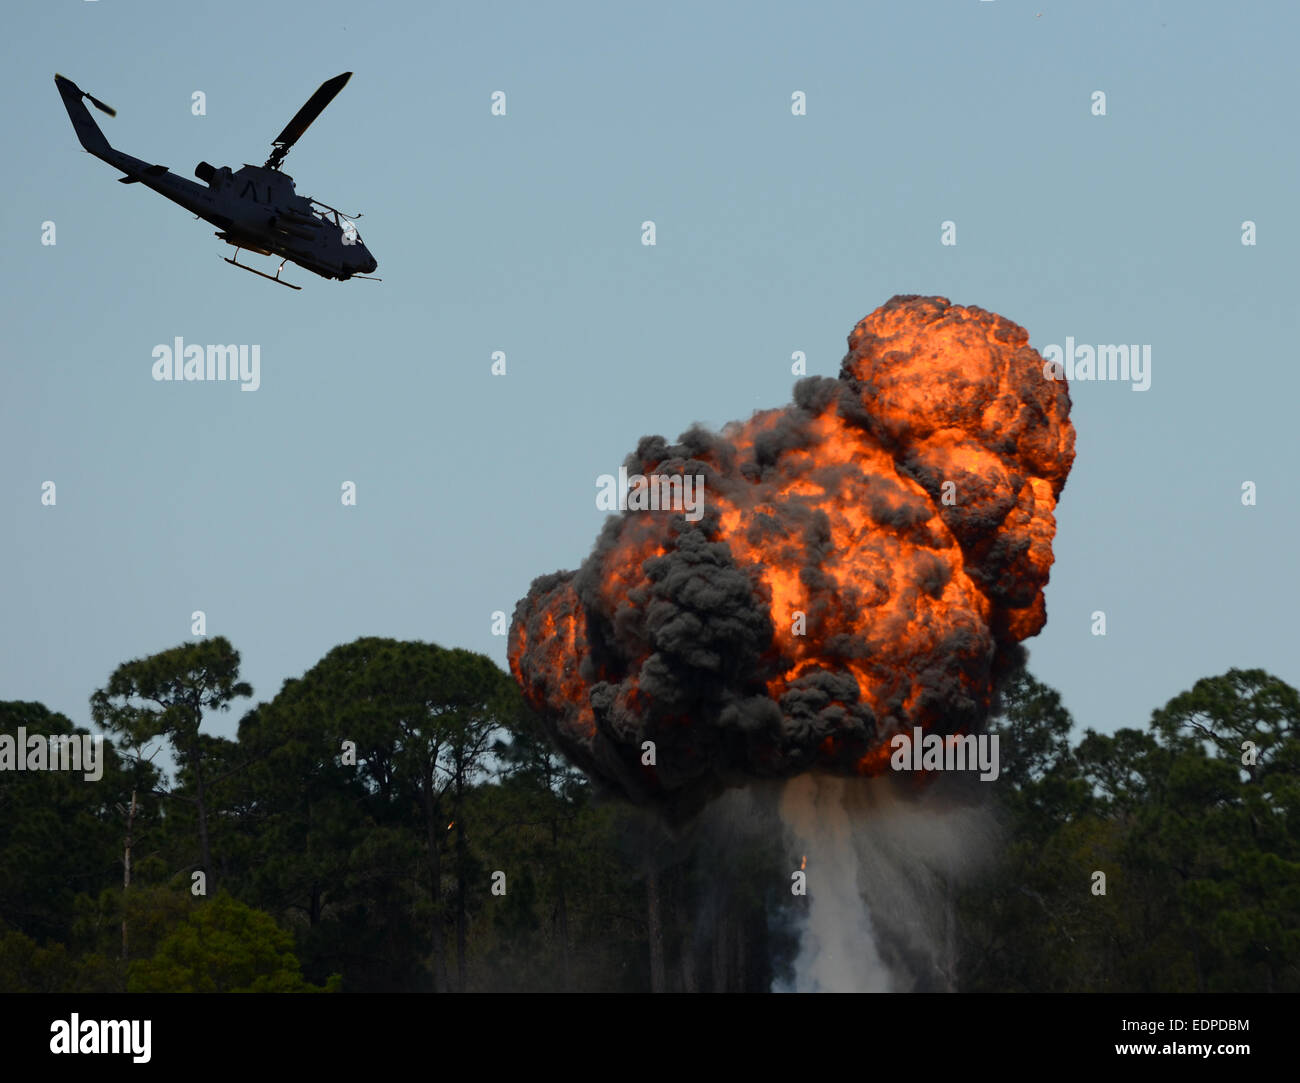 Military helicopter flying over fiery explosion and fireball - Stock Image